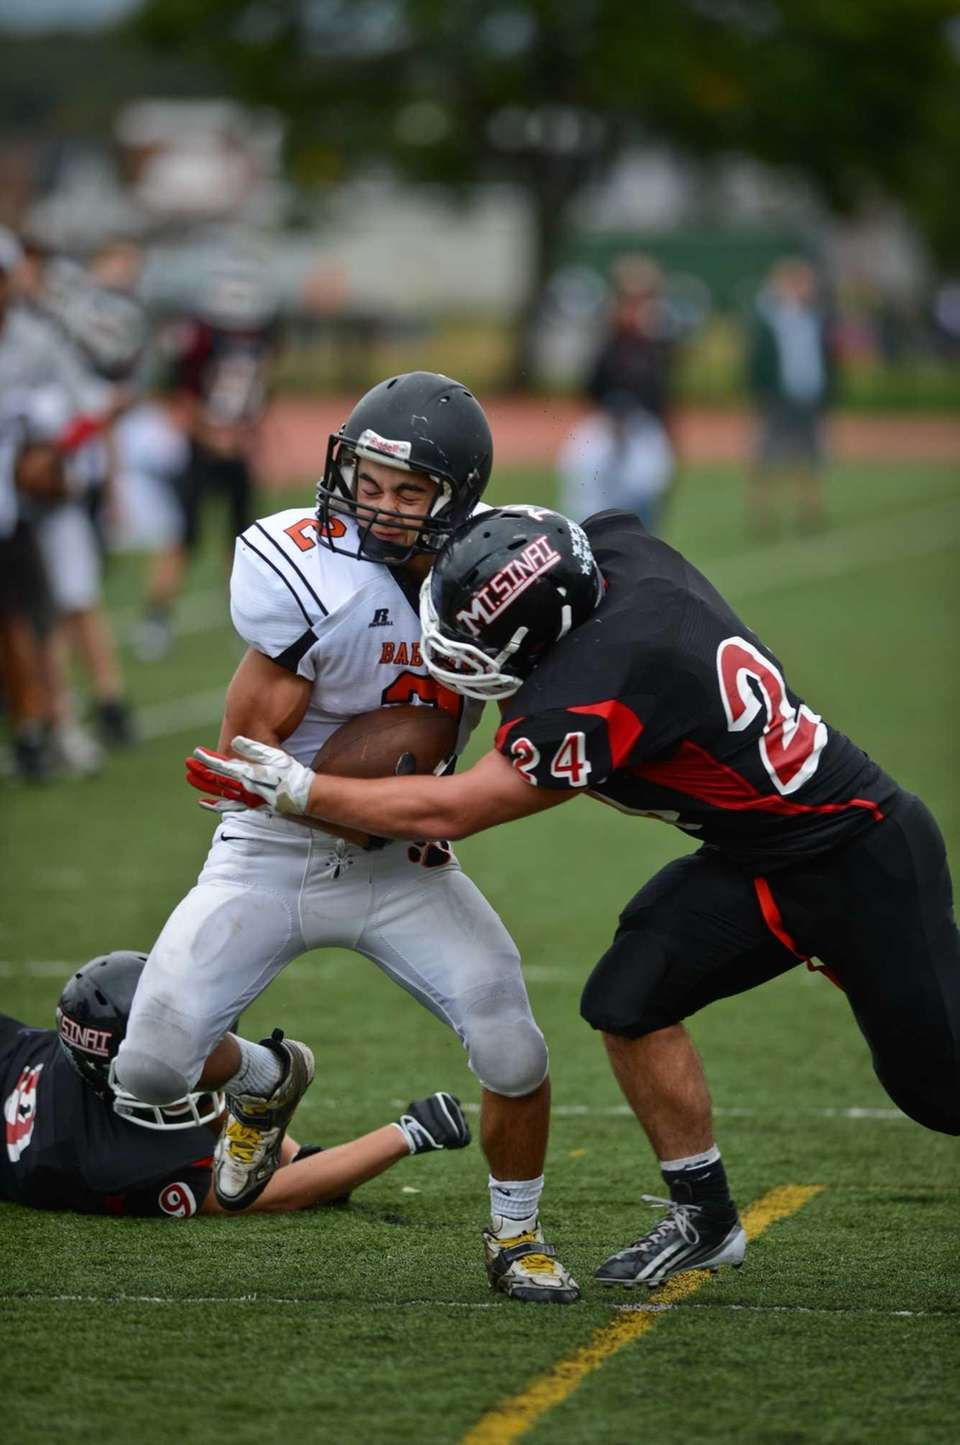 Babylon's Luke Zappia runs the ball. (Sept. 29,